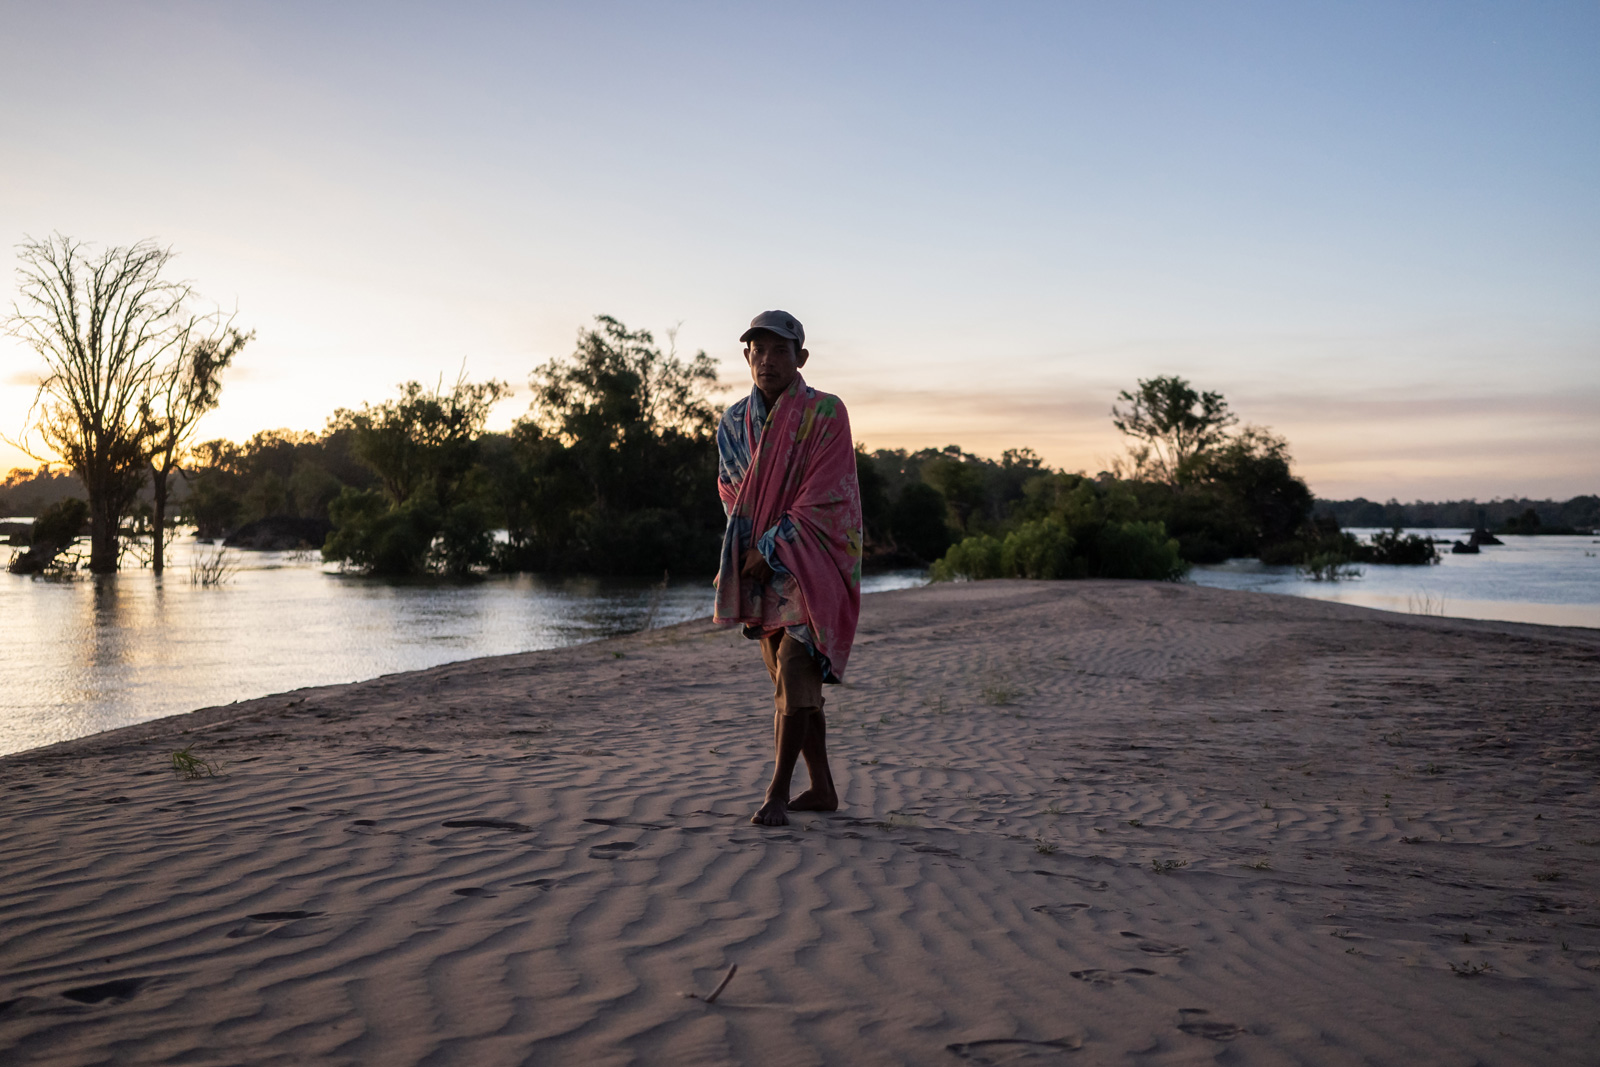 A community fishery patroller wakes up on a sandbank in the Mekong River that the team had been camping on while on the lookout for illegal fishers.